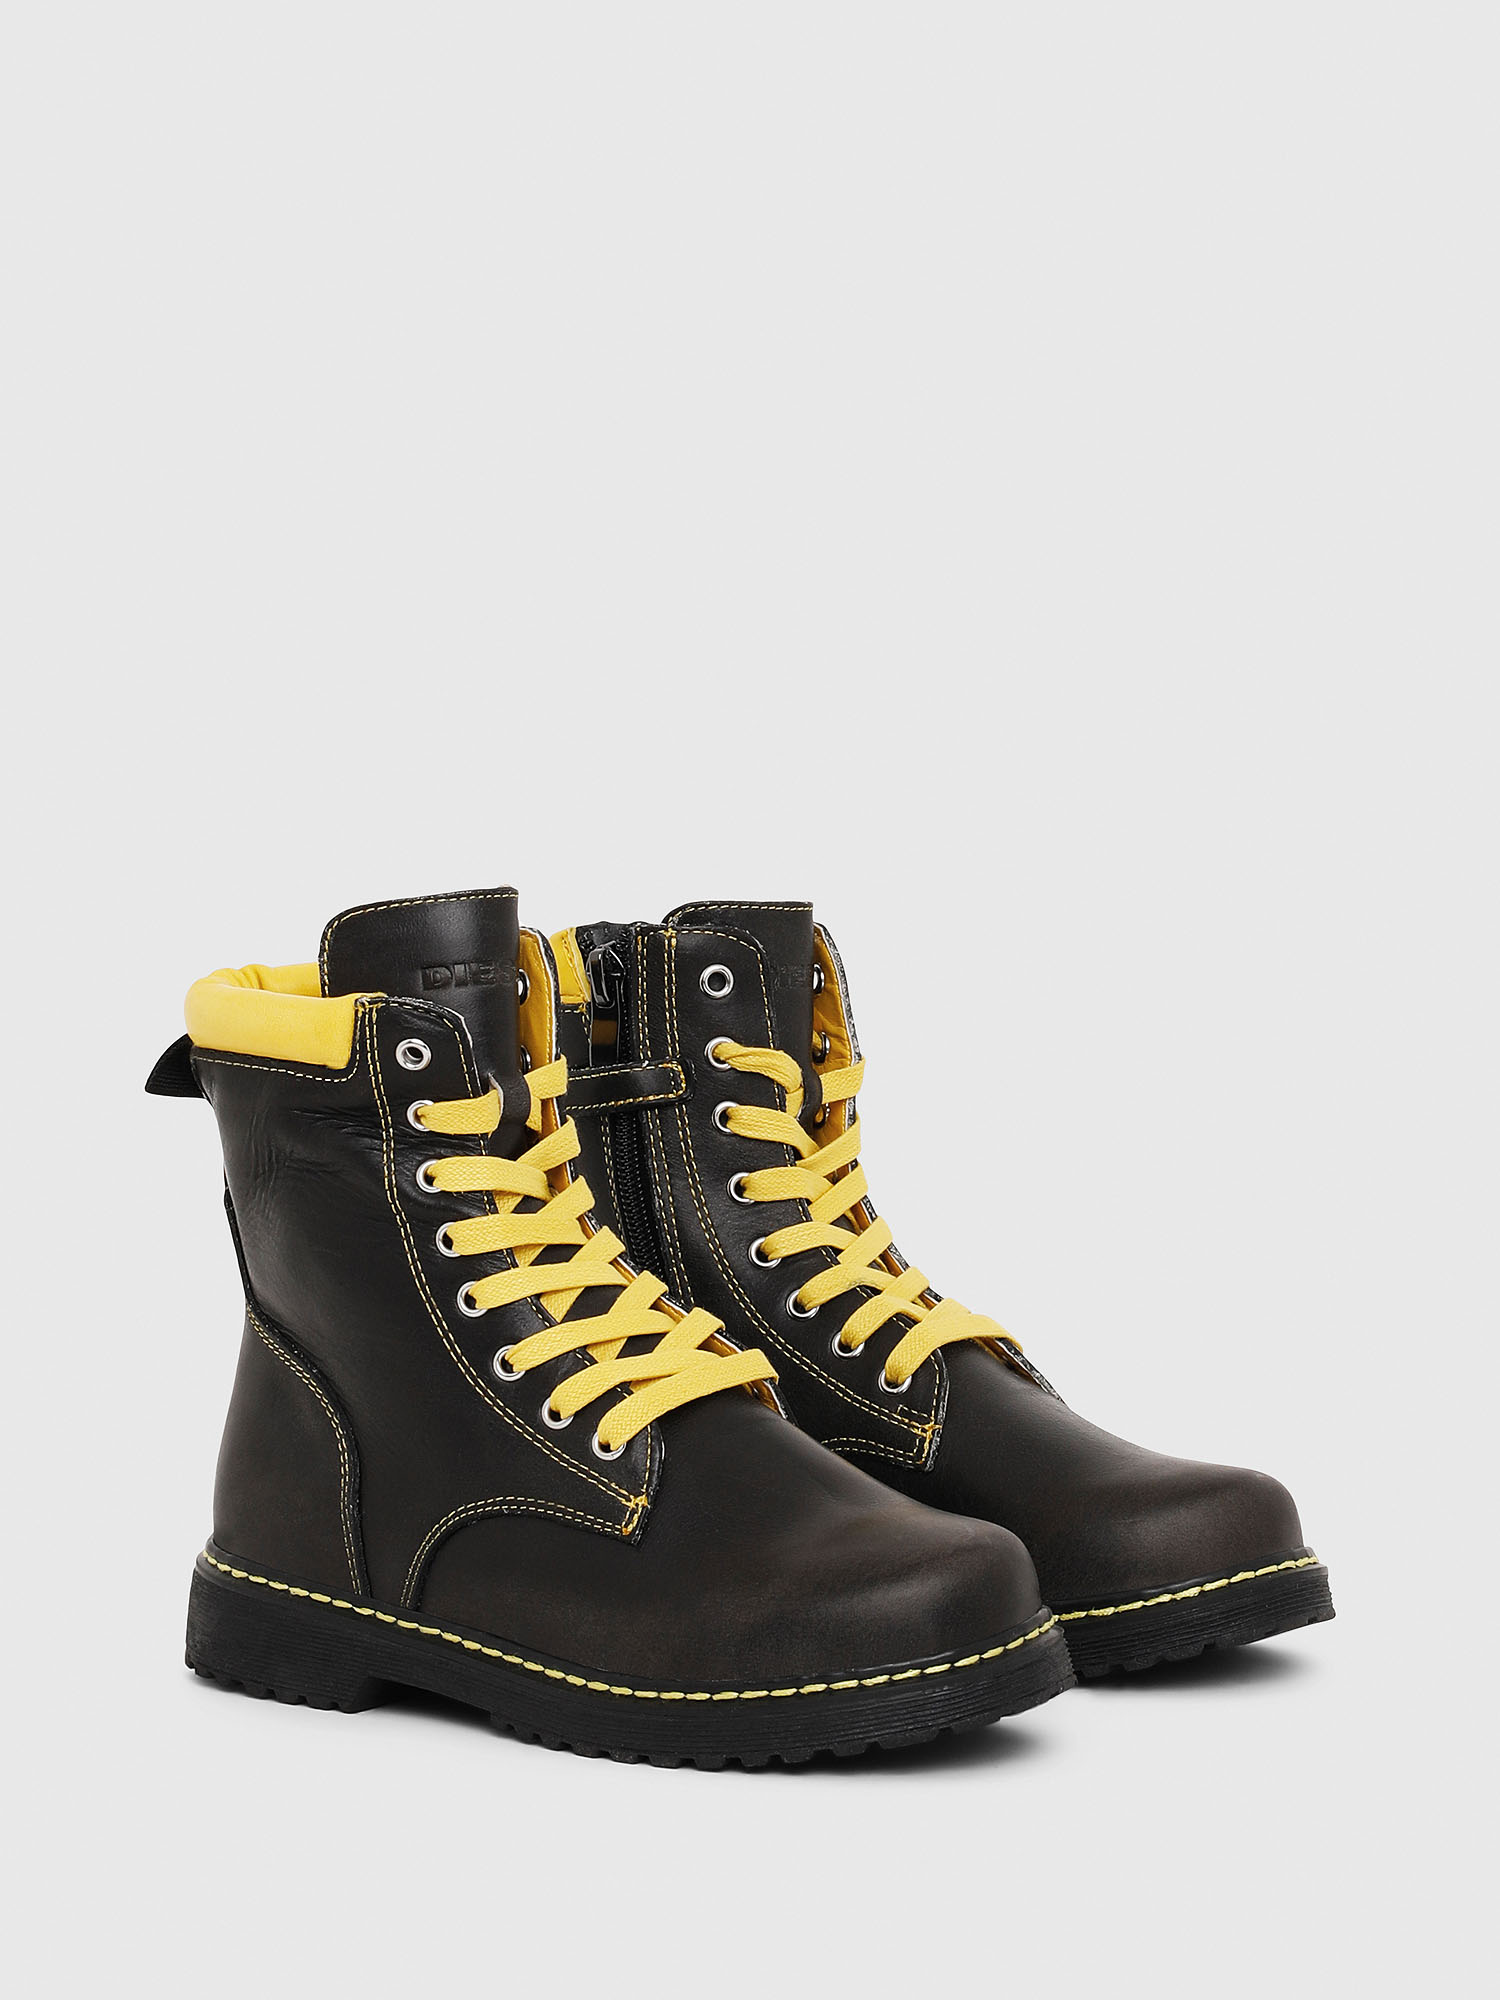 Diesel - HB LACE UP 04 CH,  - Footwear - Image 2